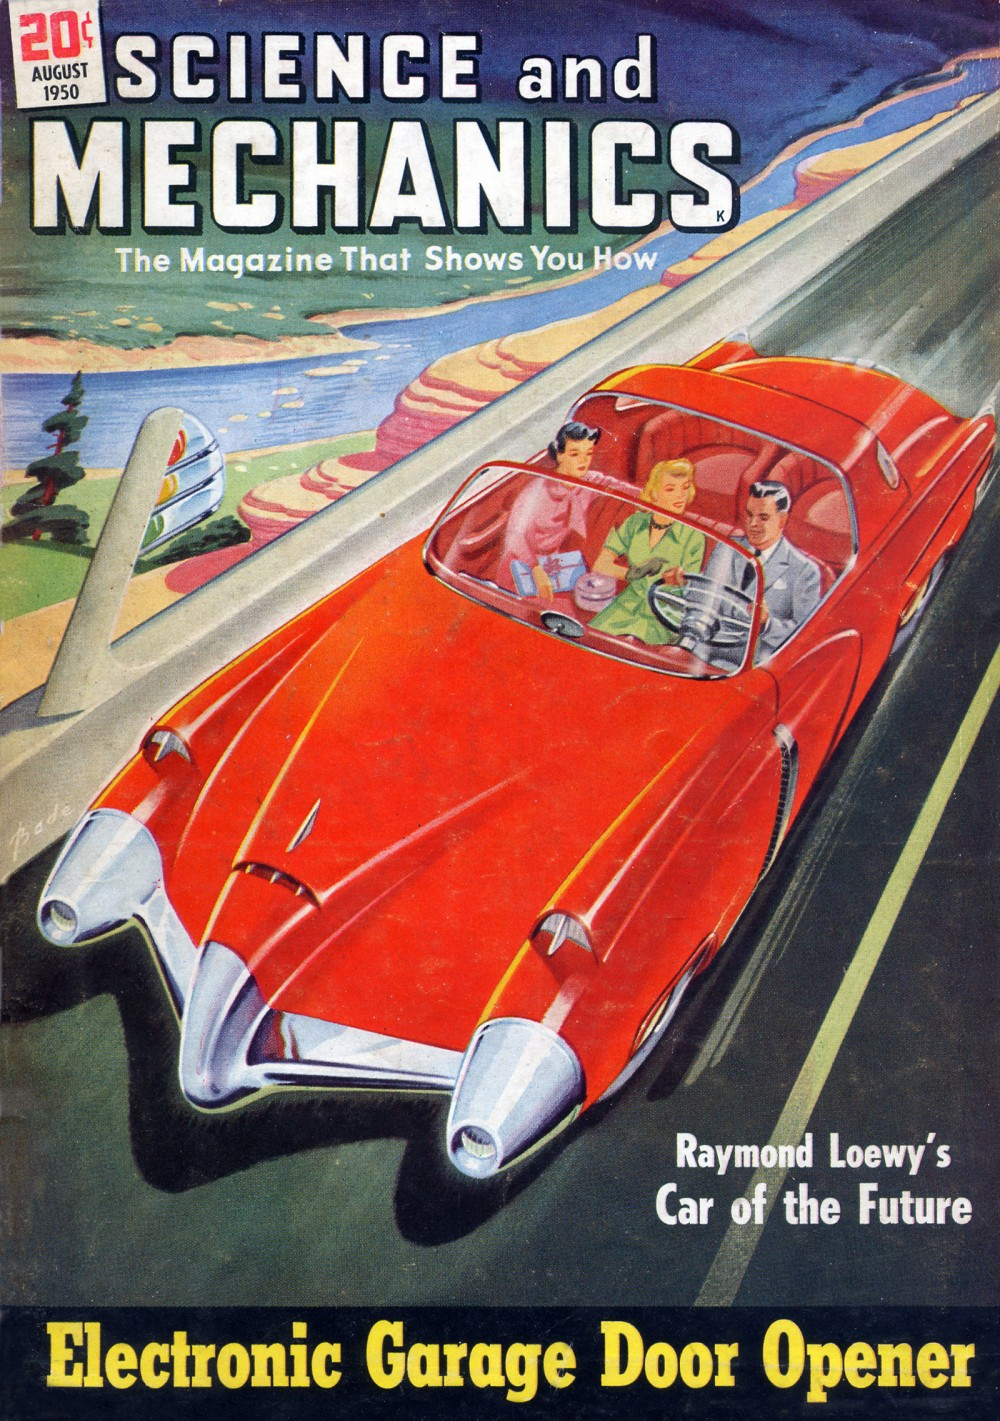 While the car had been around for decades by the 1950s, car culture really took off as a national fad during the decade. Arthur C. Base, August 1950 issue of Science and Mechanics. Wikimedia, http://commons.wikimedia.org/wiki/File:Car_of_the_Future_1950.jpg.